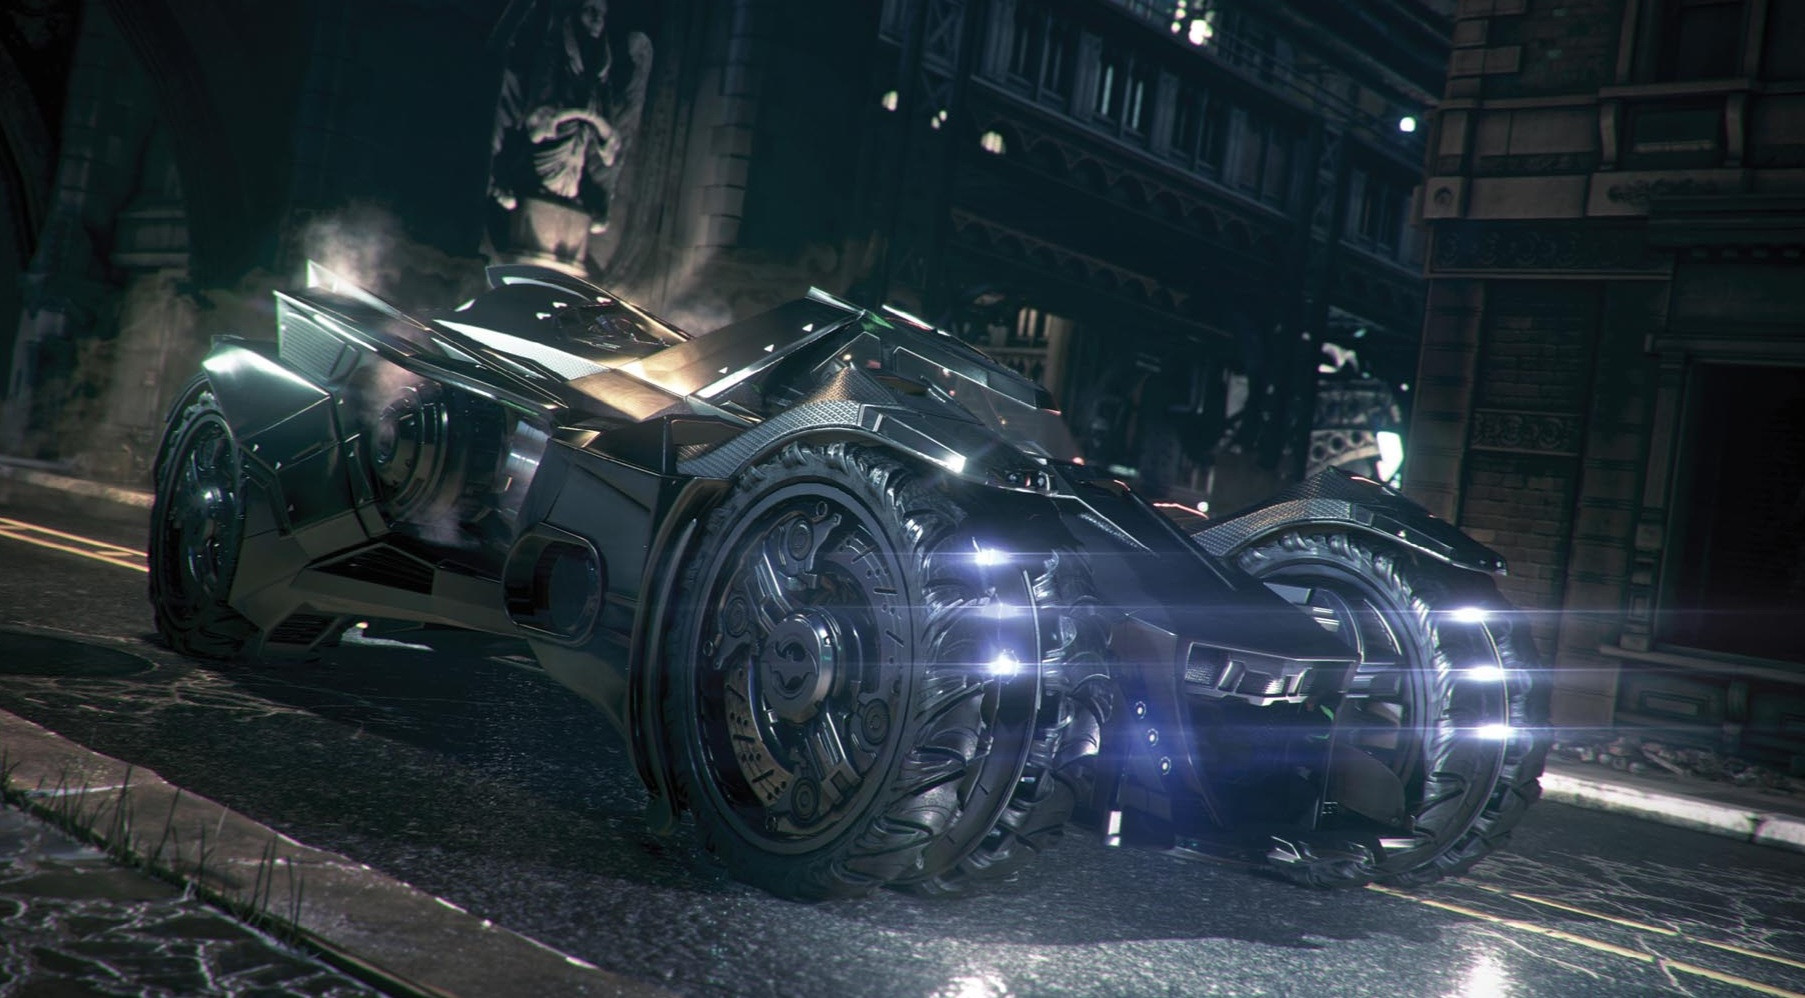 The Batmobile shouldn't be a death machine!